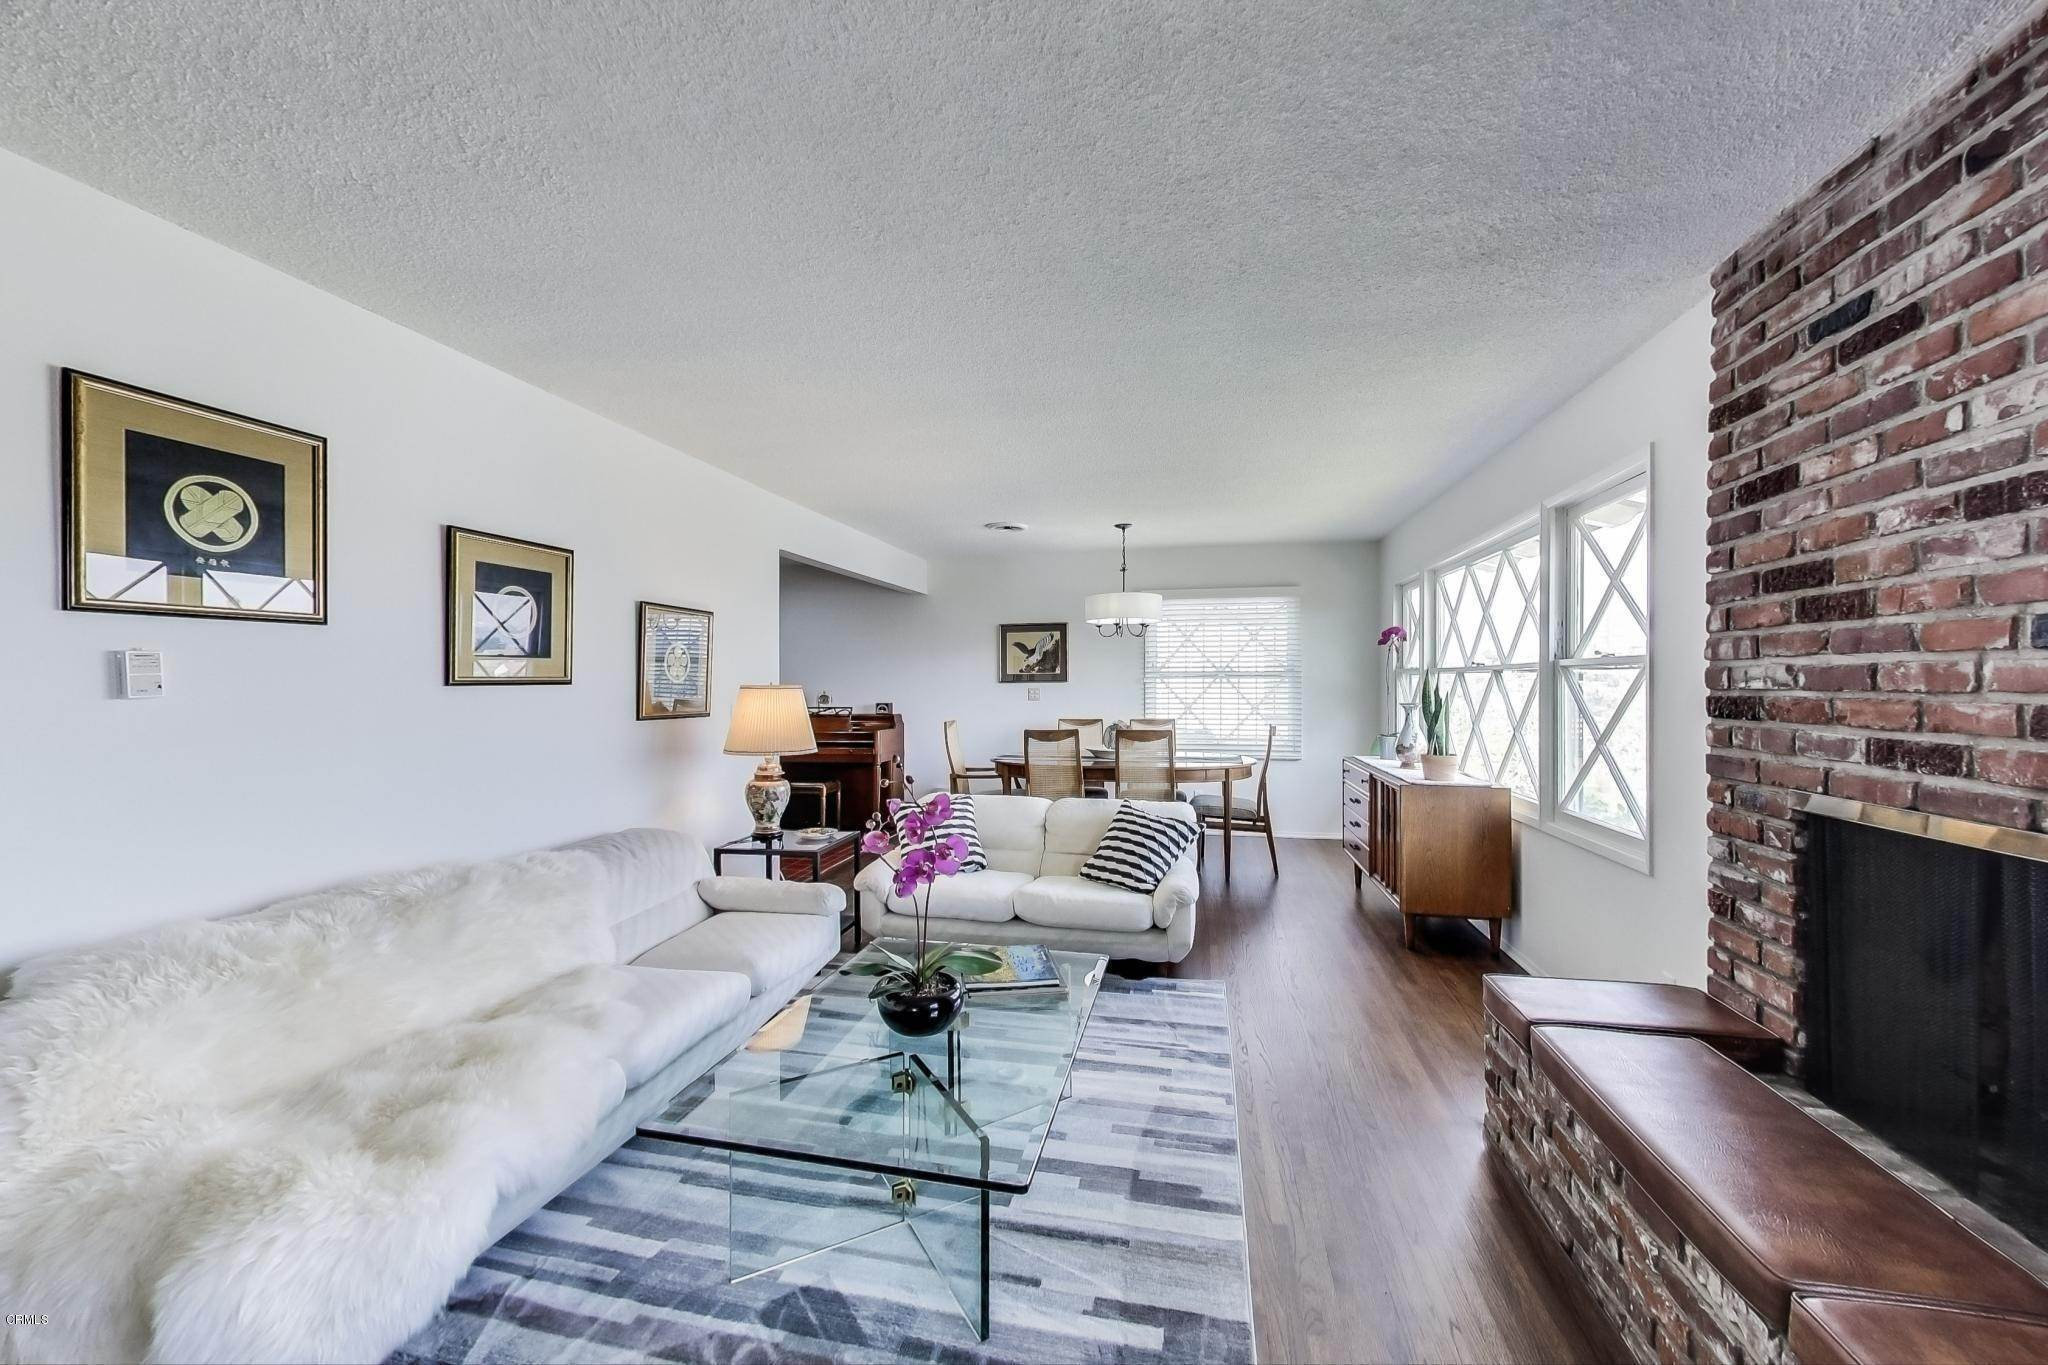 4. Single Family Homes for Sale at 2534 Ivan Hill Terrace Terrace Los Angeles, California 90039 United States